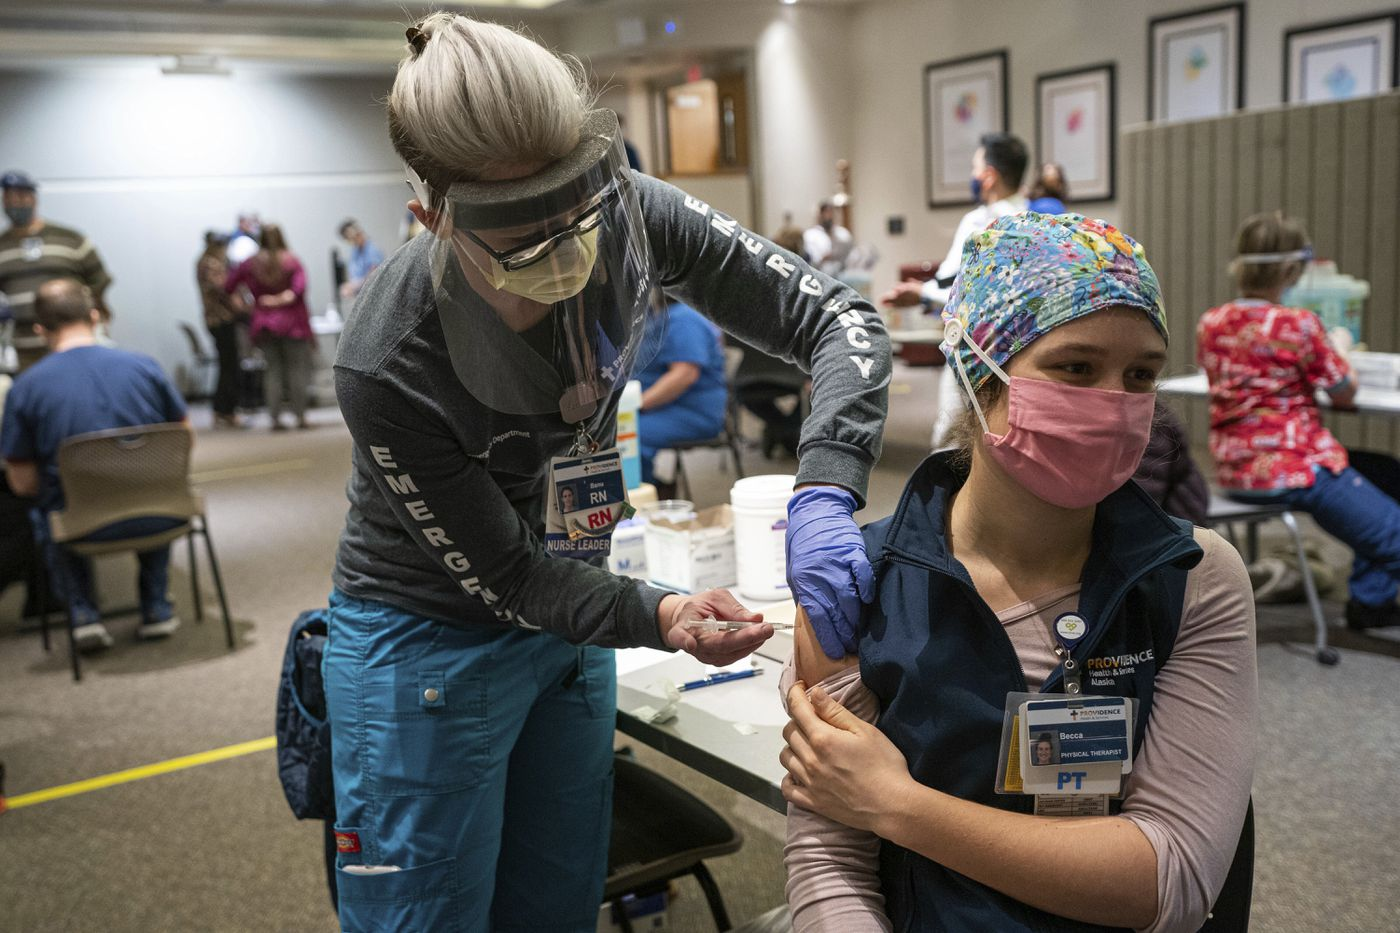 DECEMBER 16. Registered Nurse Banu Mufale administers a Pfizer-BioNtech COVID-19 vaccine to physical therapist Becca Mamrol, at Providence Alaska Medical Center. The hospital, Alaska's largest, plans to vaccinate 485 people this week. (Loren Holmes / ADN)